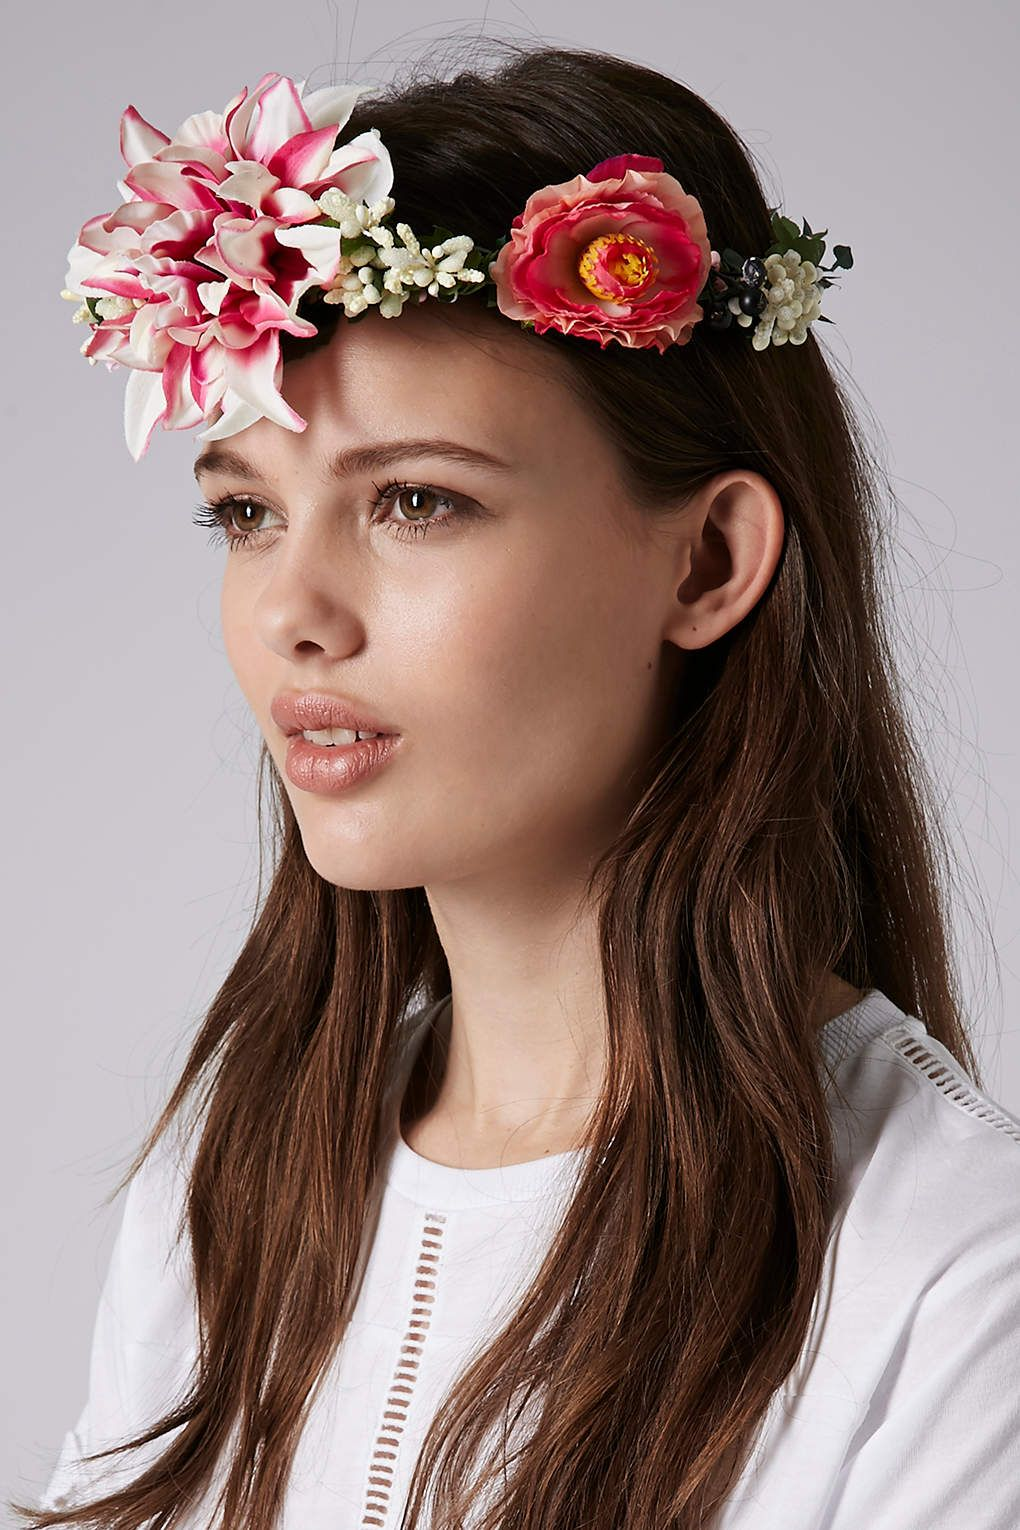 Berry Garland Hair Accessories Bags Accessories Topshop